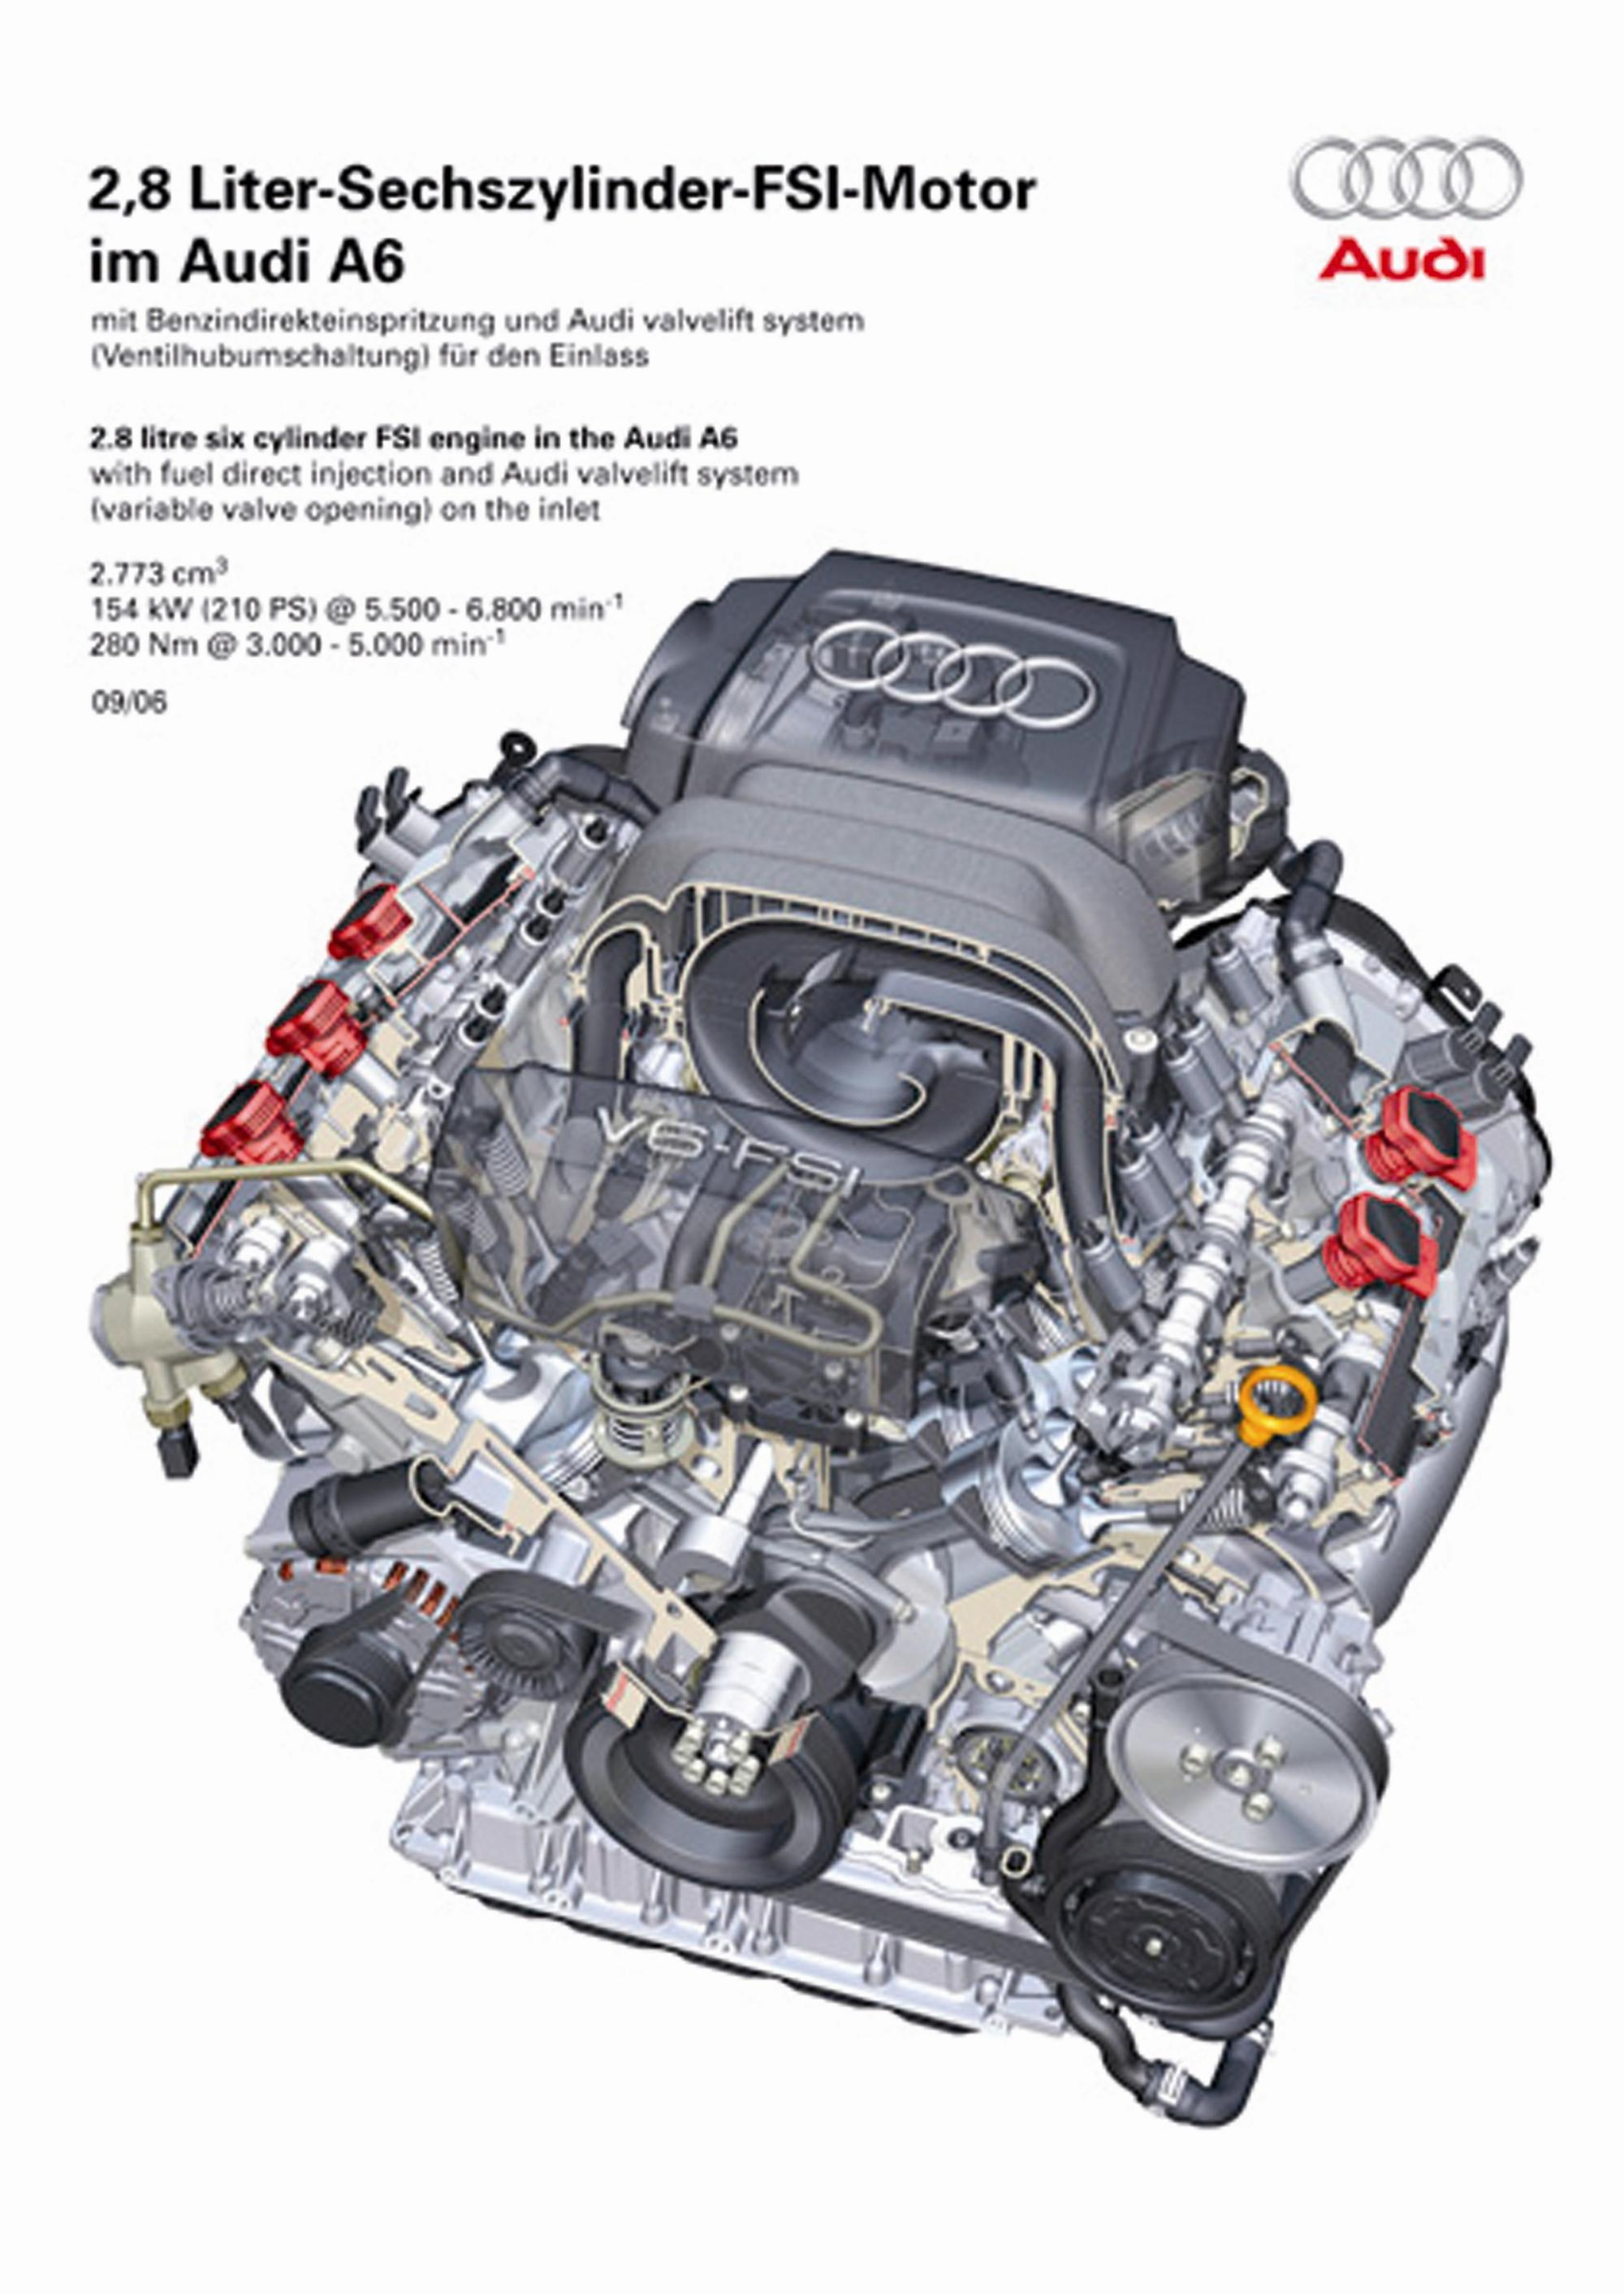 hight resolution of 2005 audi a6 engine diagram wiring diagram insider audi tt 3 2 engine diagram